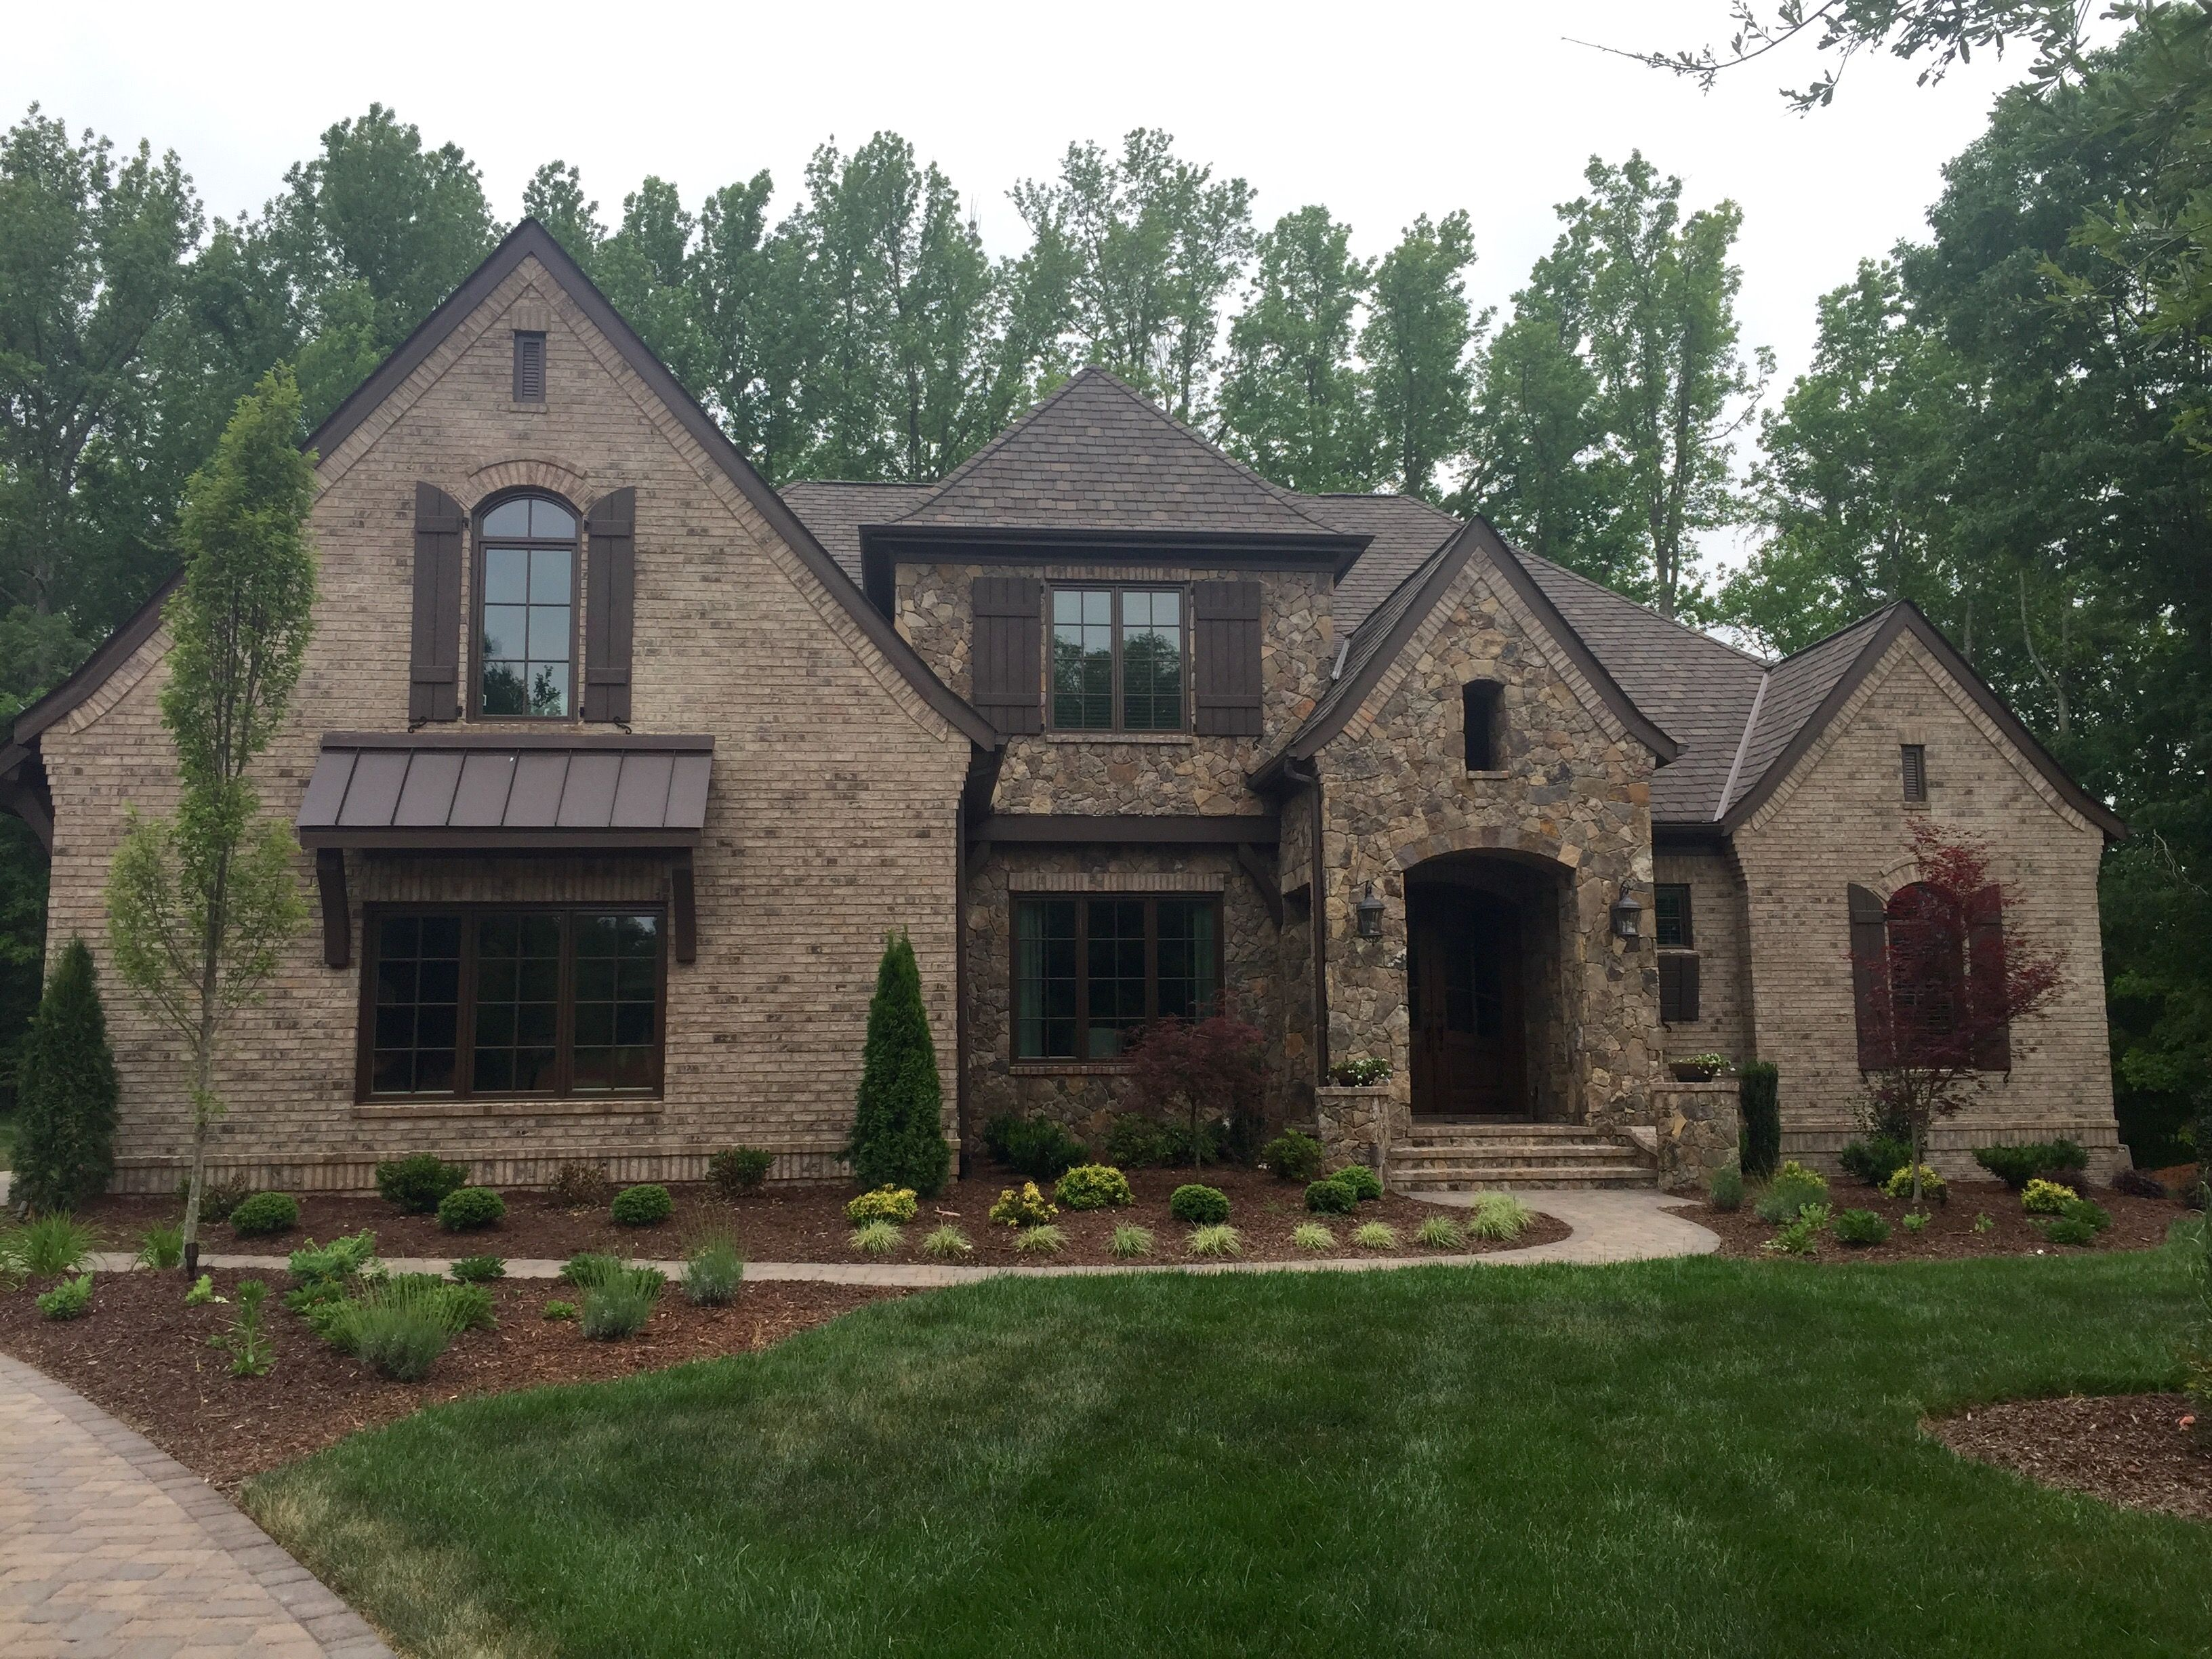 Arh plan asheville 1267 f exterior 38 roof grand manor - Houses with stone and brick on exterior ...